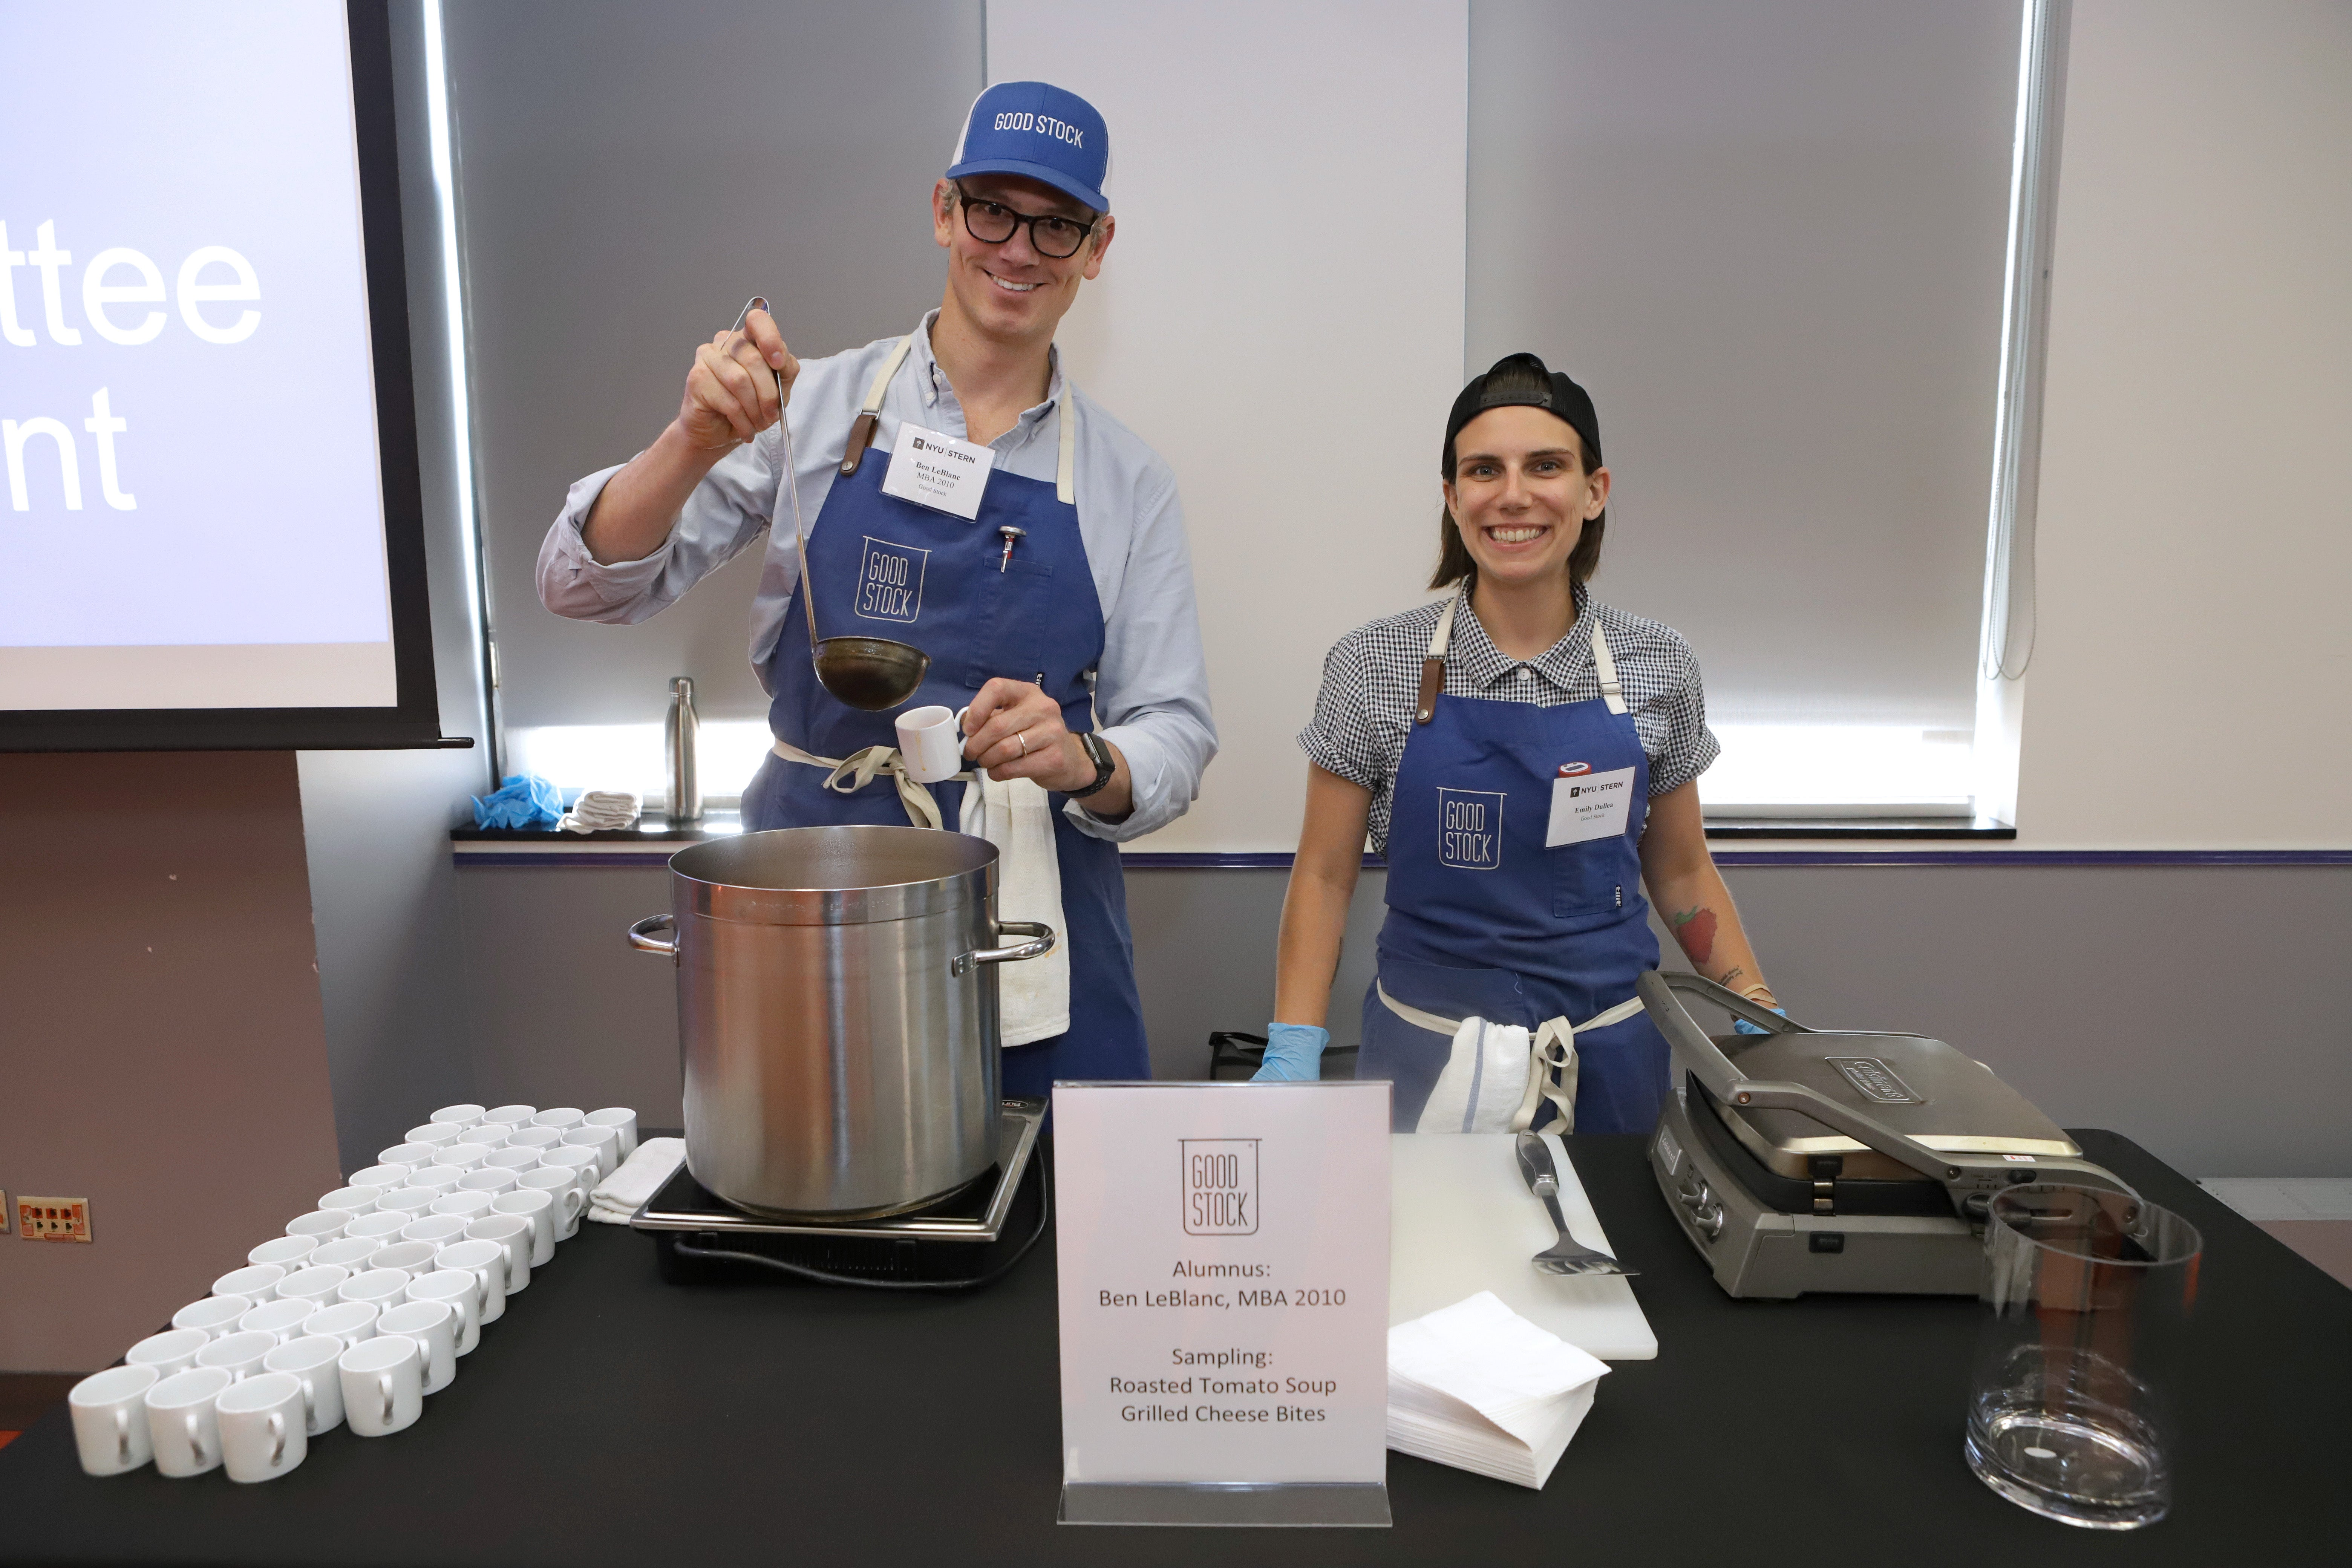 Alumni owned companies distribute food and wine at the annual Taste of Stern event